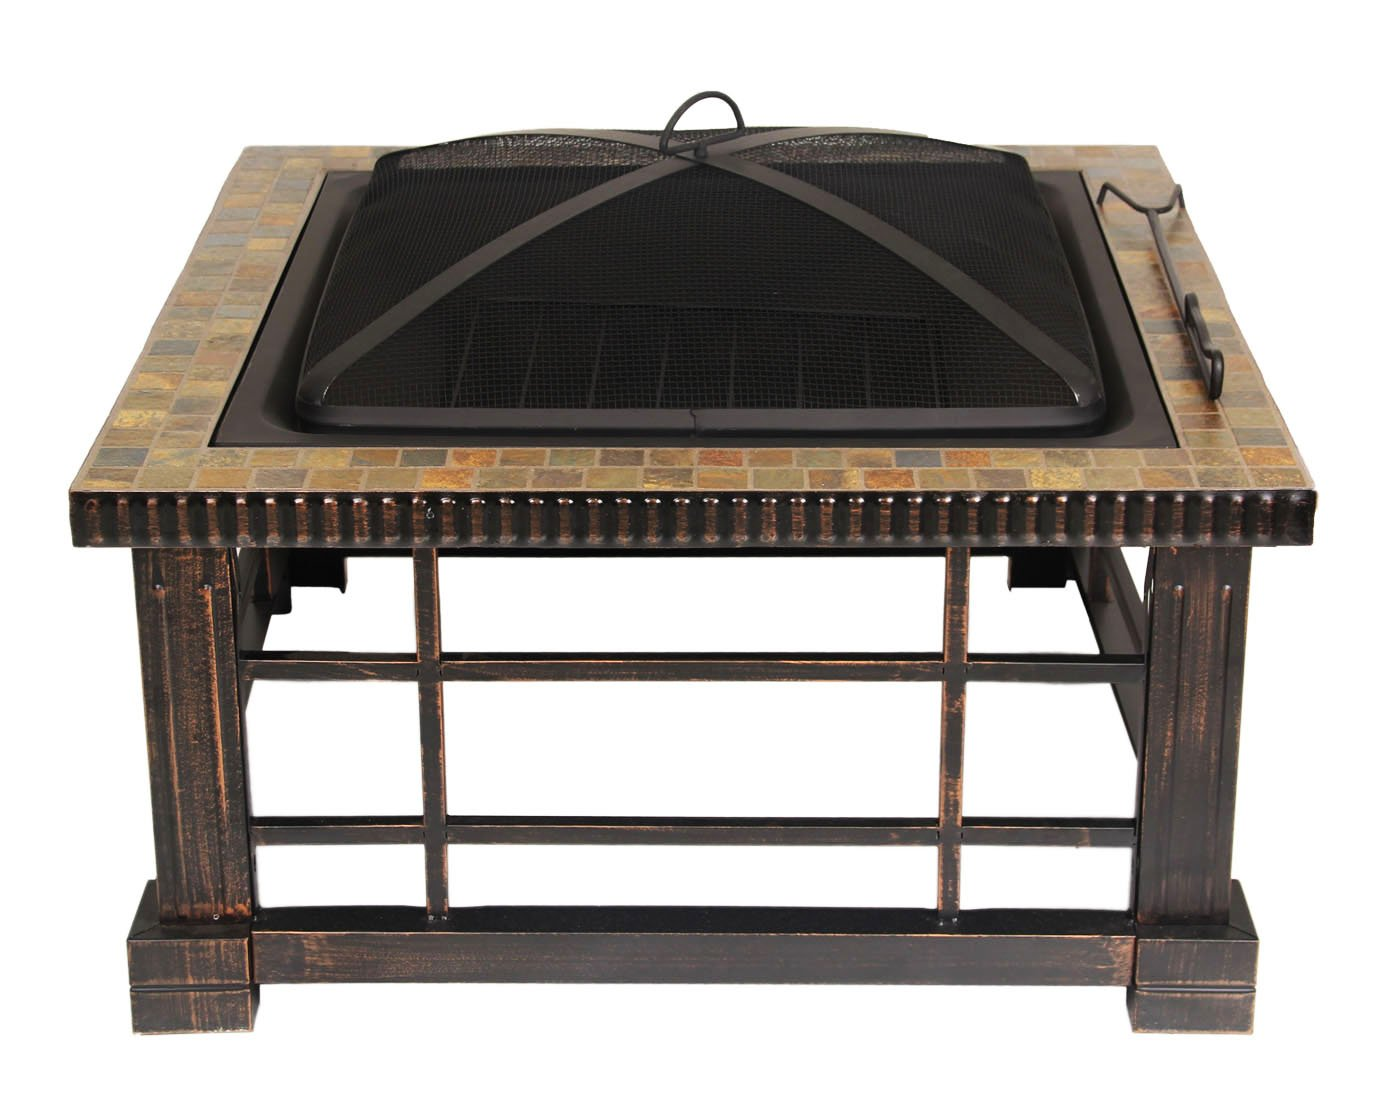 UPHA 30-inch Square Natural Slate Top Fire Pit Table with Rubbed Bronze Side Panels for Outdoor Patio Backyard